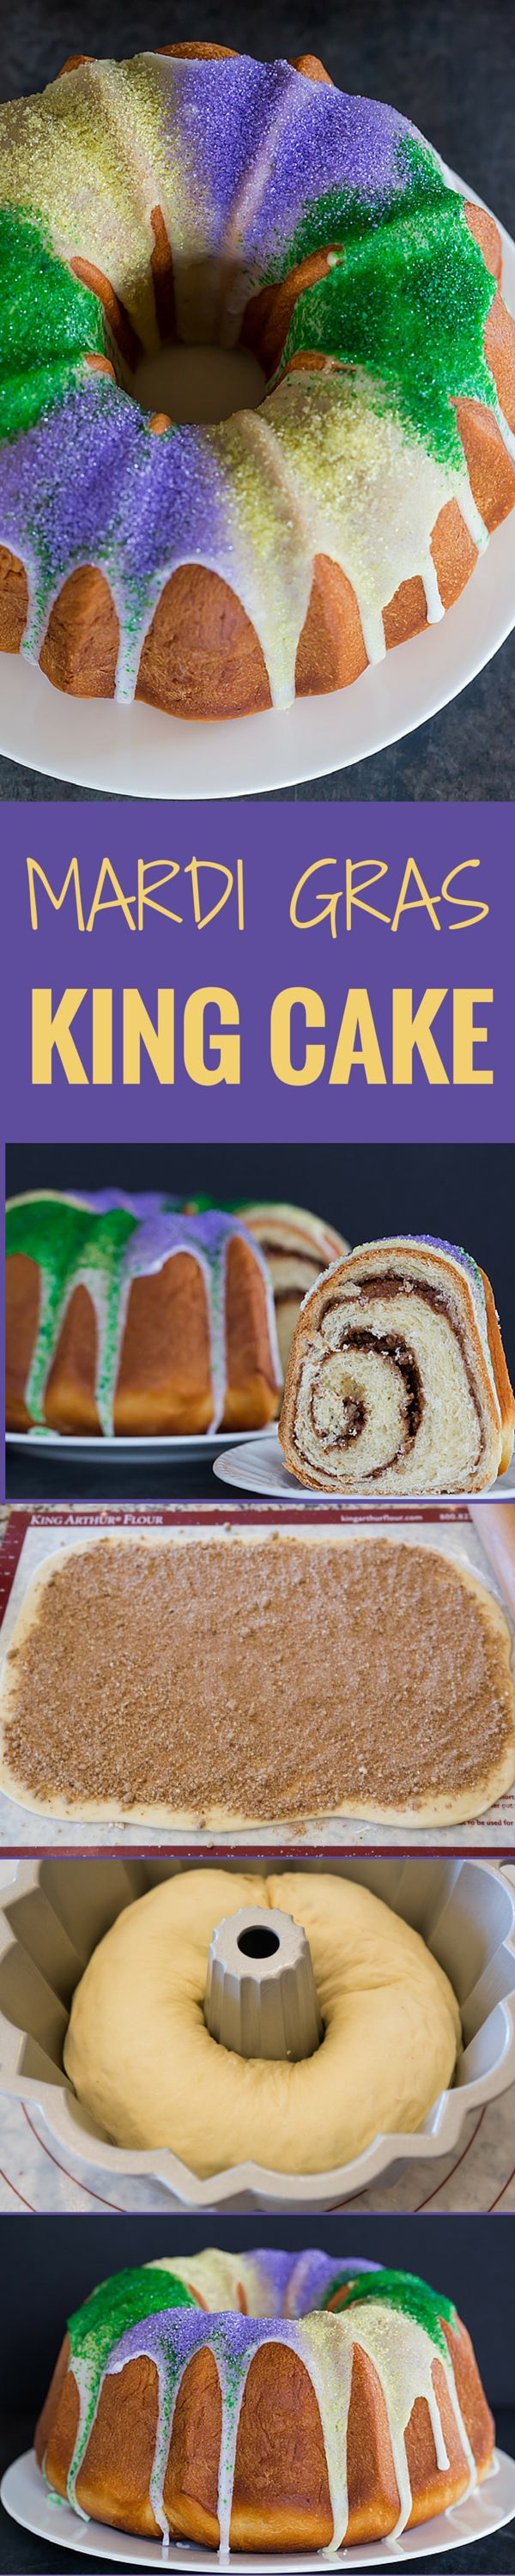 A festive King Cake for Mardi Gras – filled with a pecan, brown sugar and cinnamon swirl – baked into a Bundt pan and decorated with colored sanding sugars.